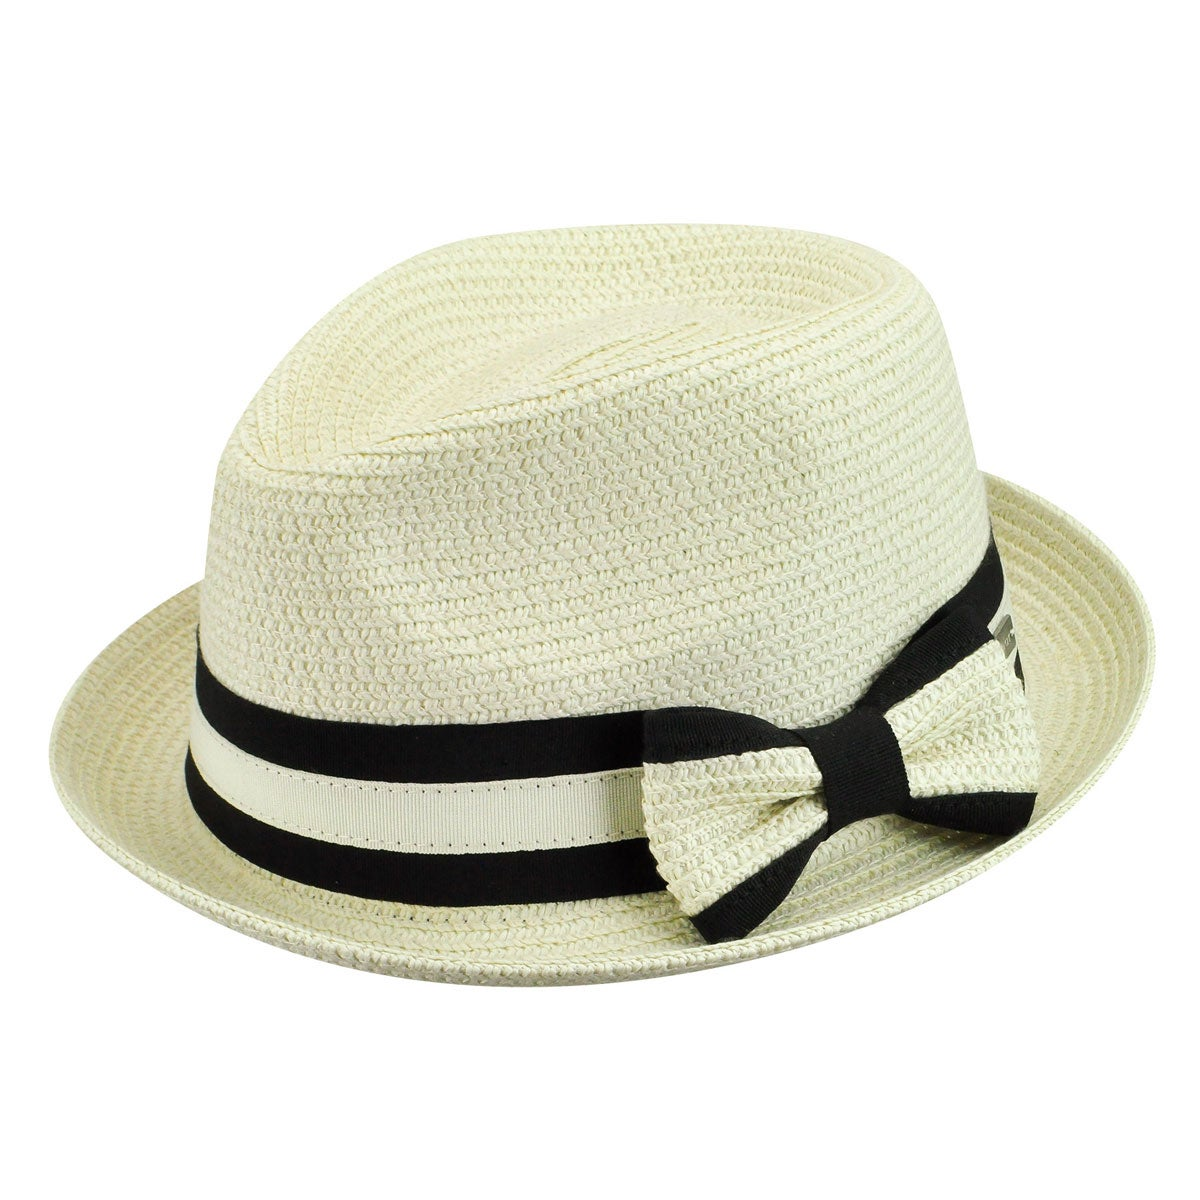 1920s Hat Styles for Women – History Beyond the Cloche Hat Joanne Braided Trilby - Ivory Multi1SFM $29.25 AT vintagedancer.com